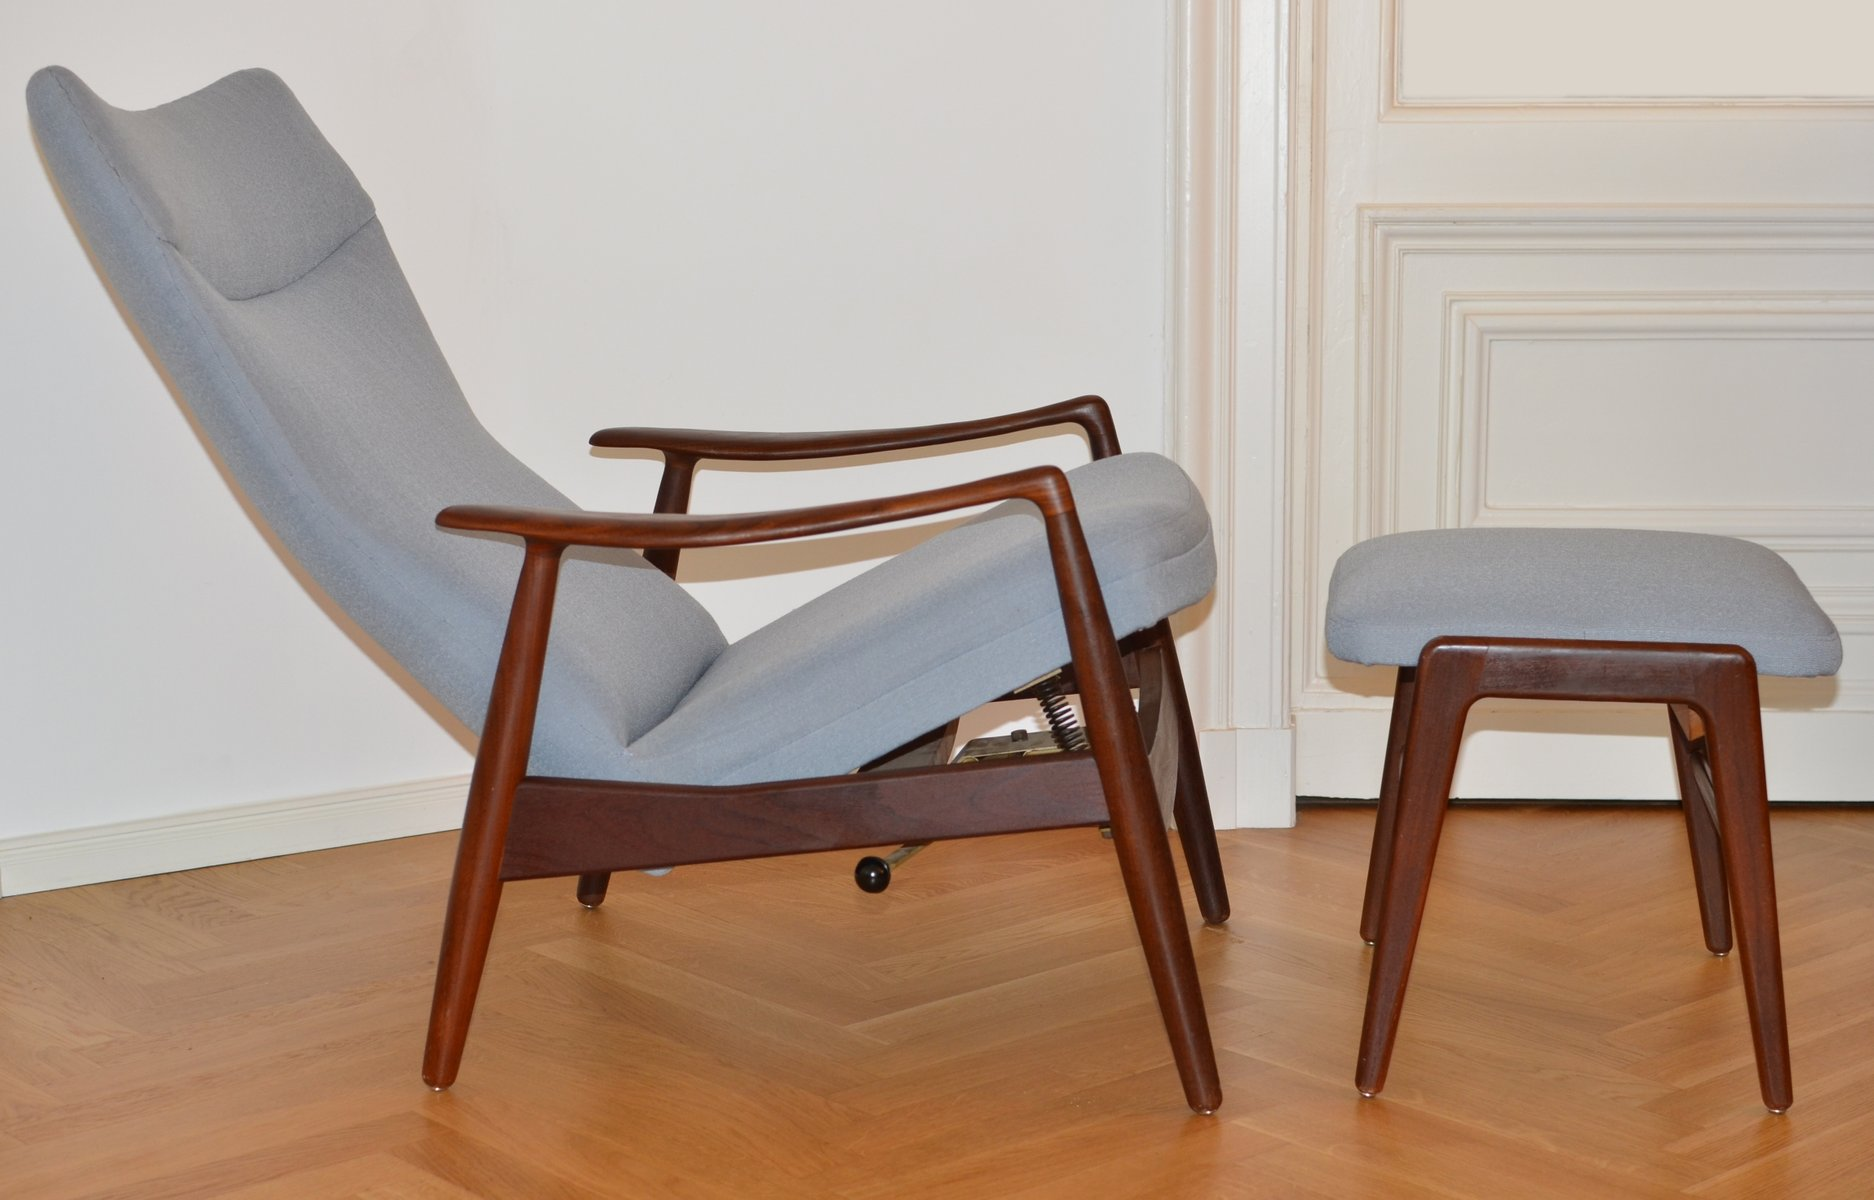 Vintage Teak Reclining Lounge Chair & Ottoman by Alf Svensson for